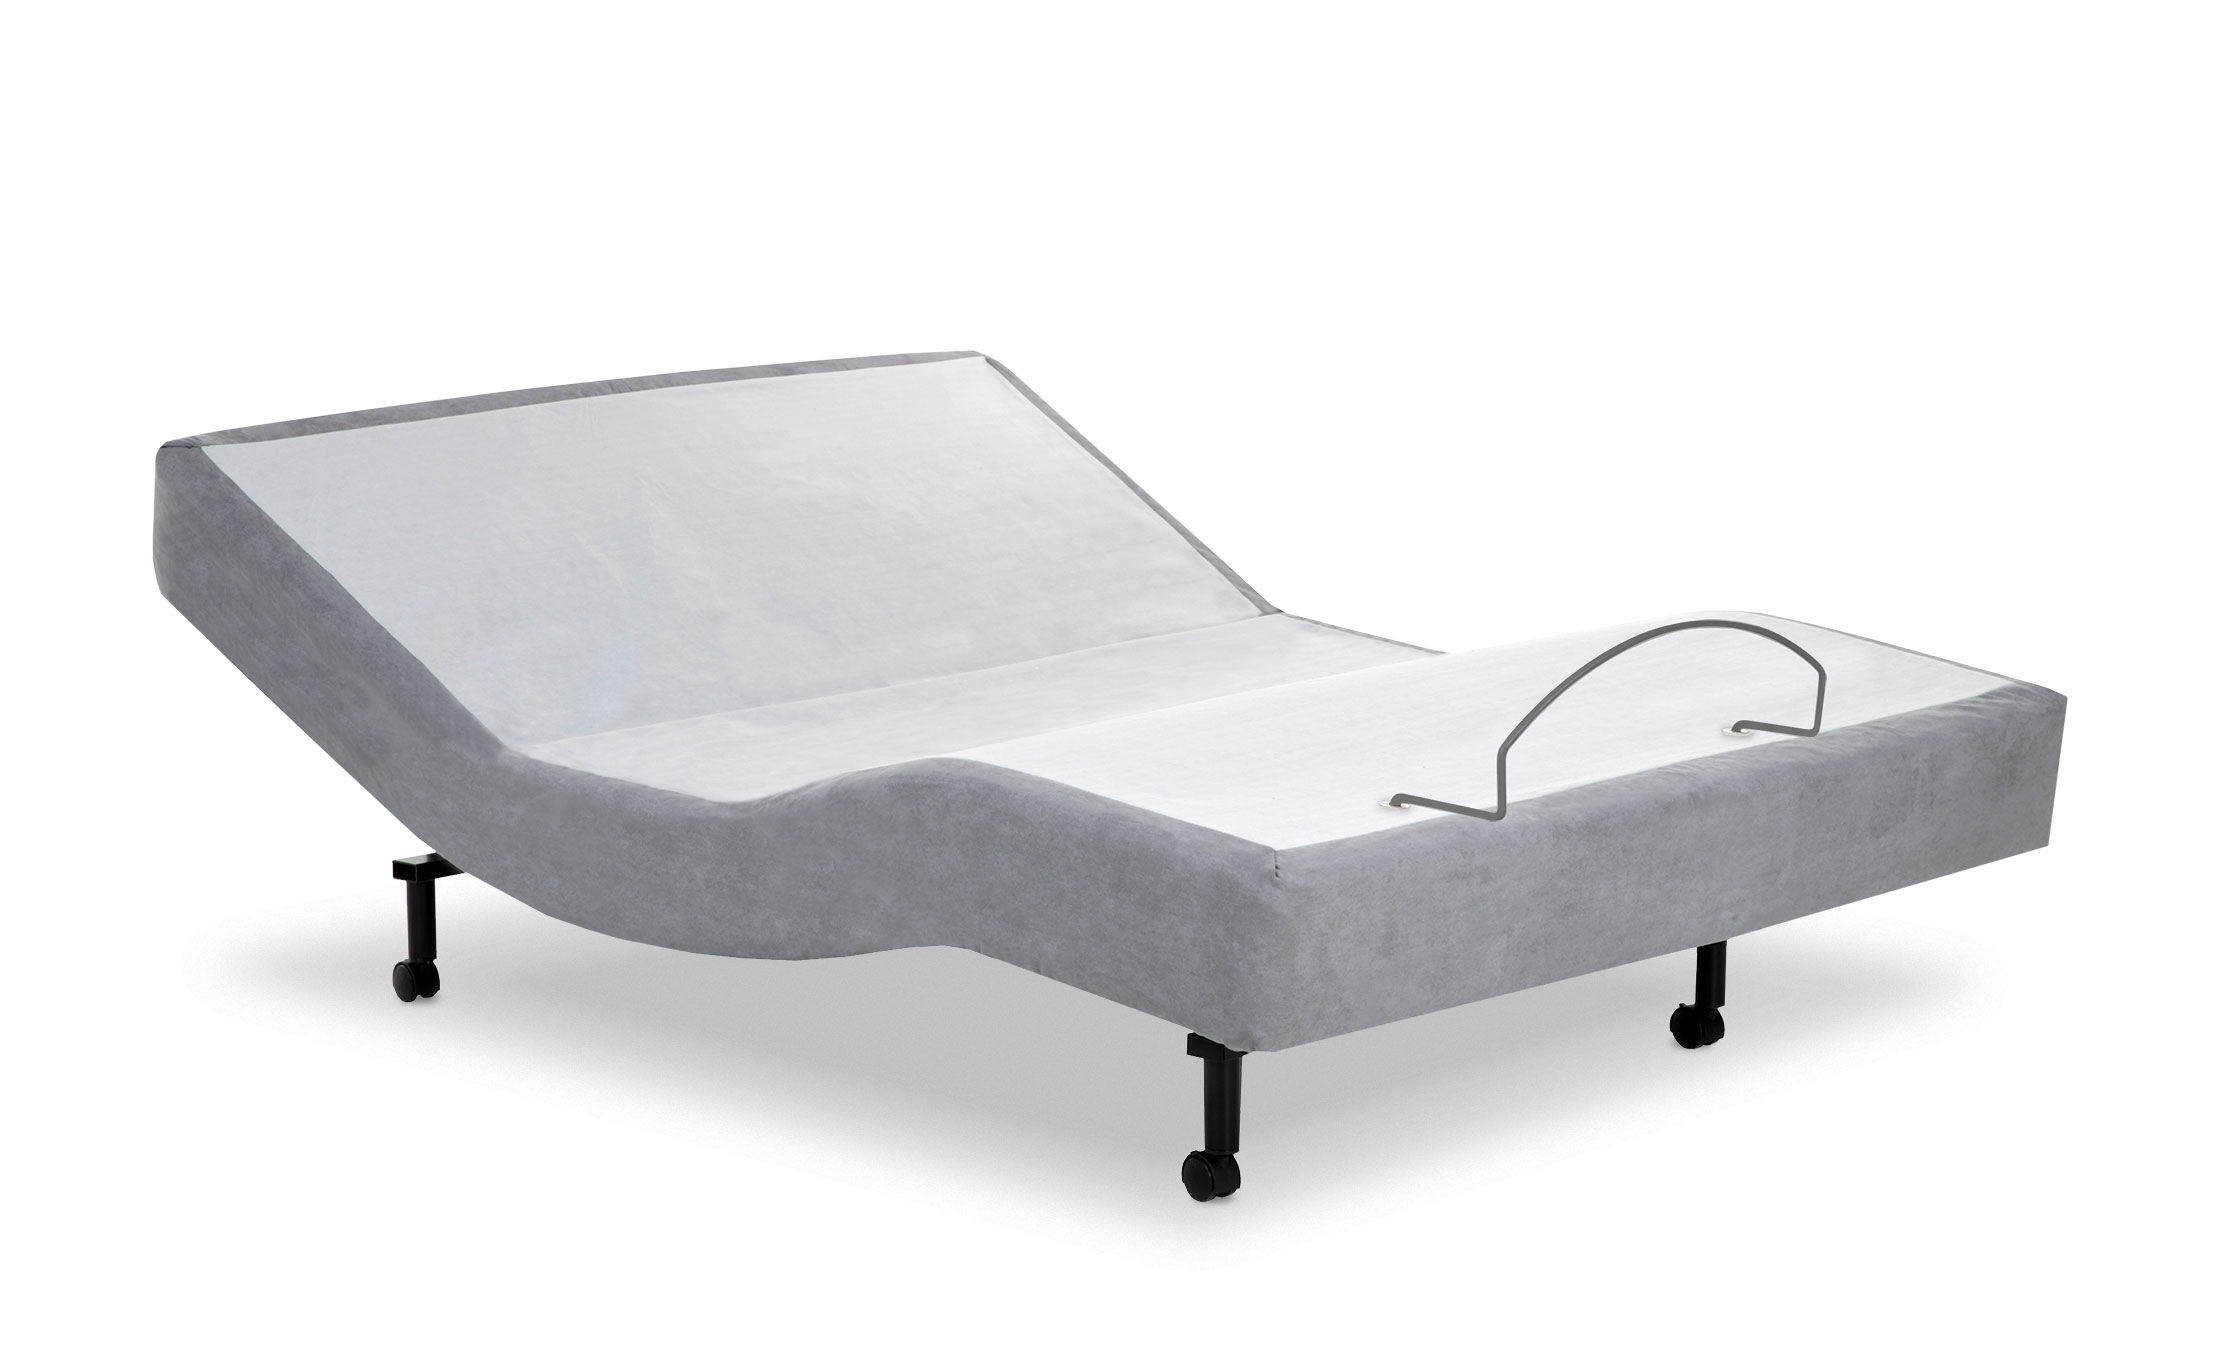 Astrabeds Ergo Star Evolution Adjustable Bed